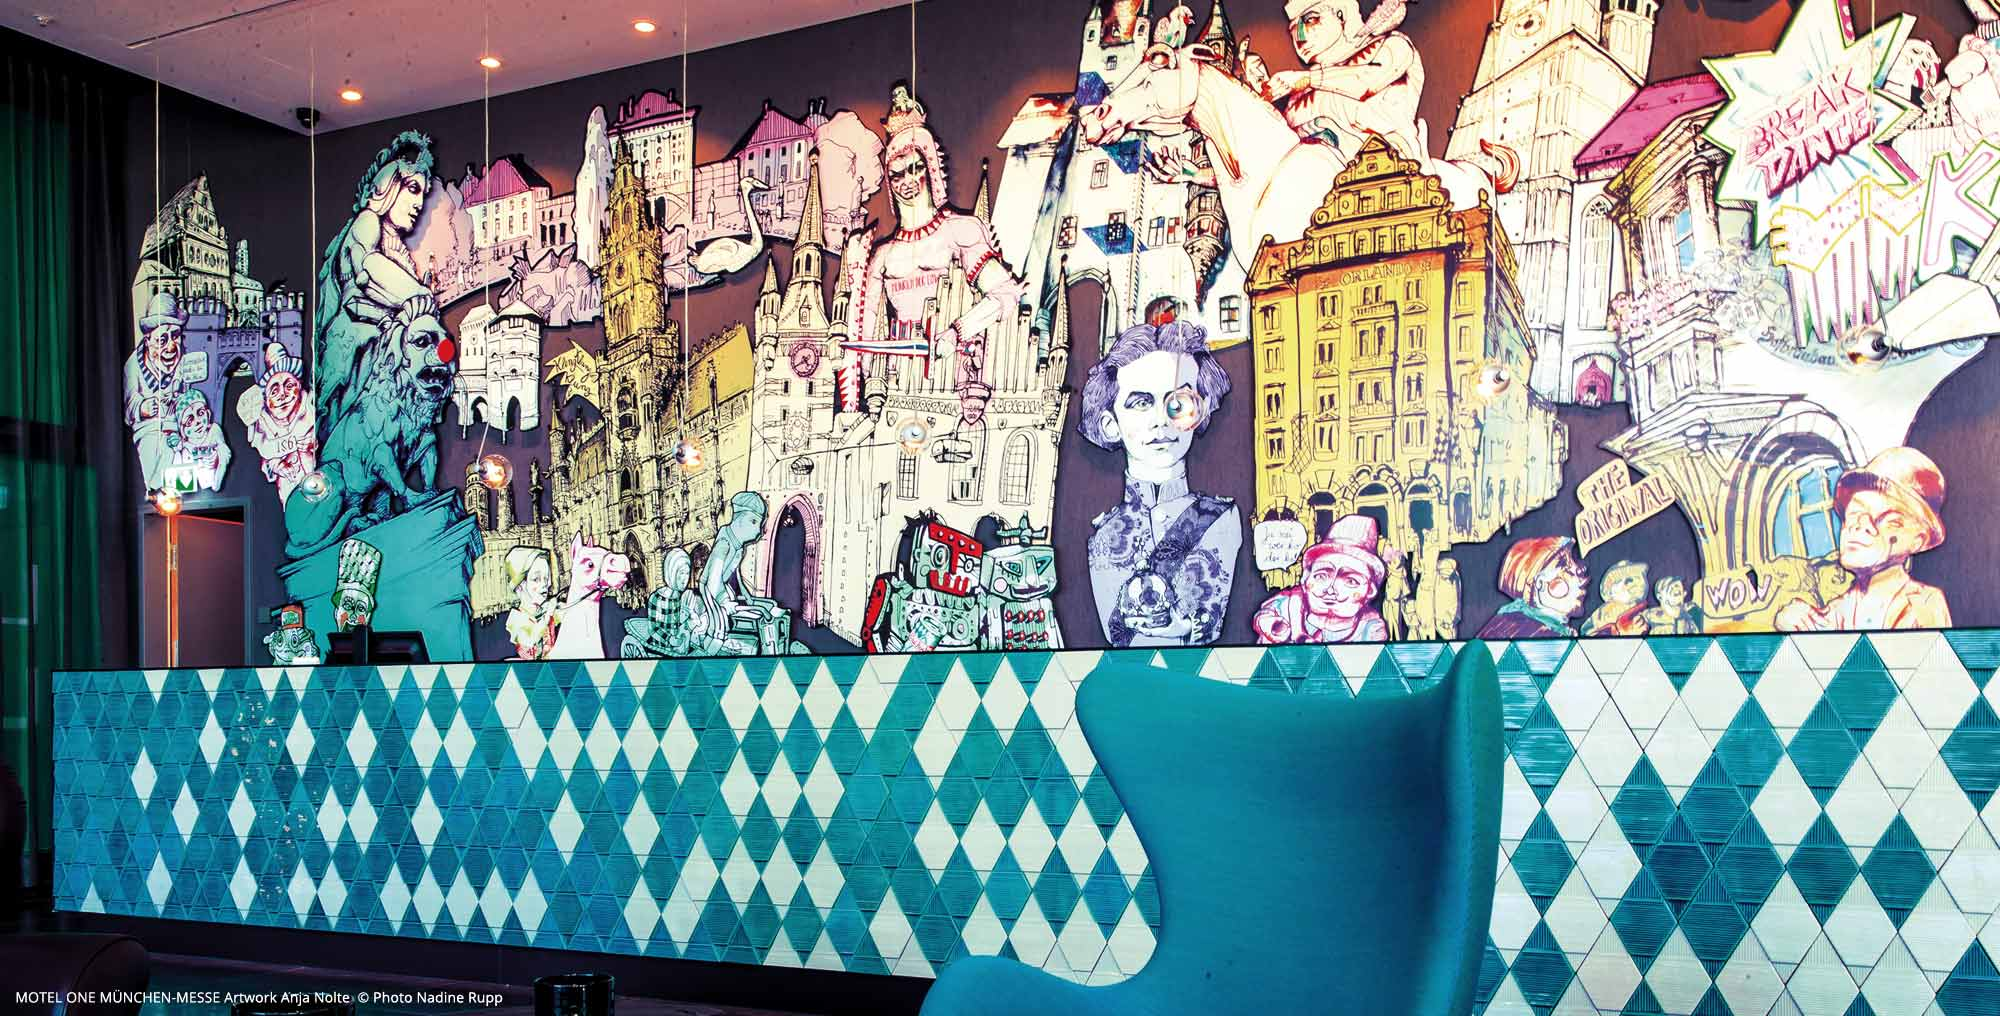 Reception motel one Munich-fair with artworks from Anja Nolte